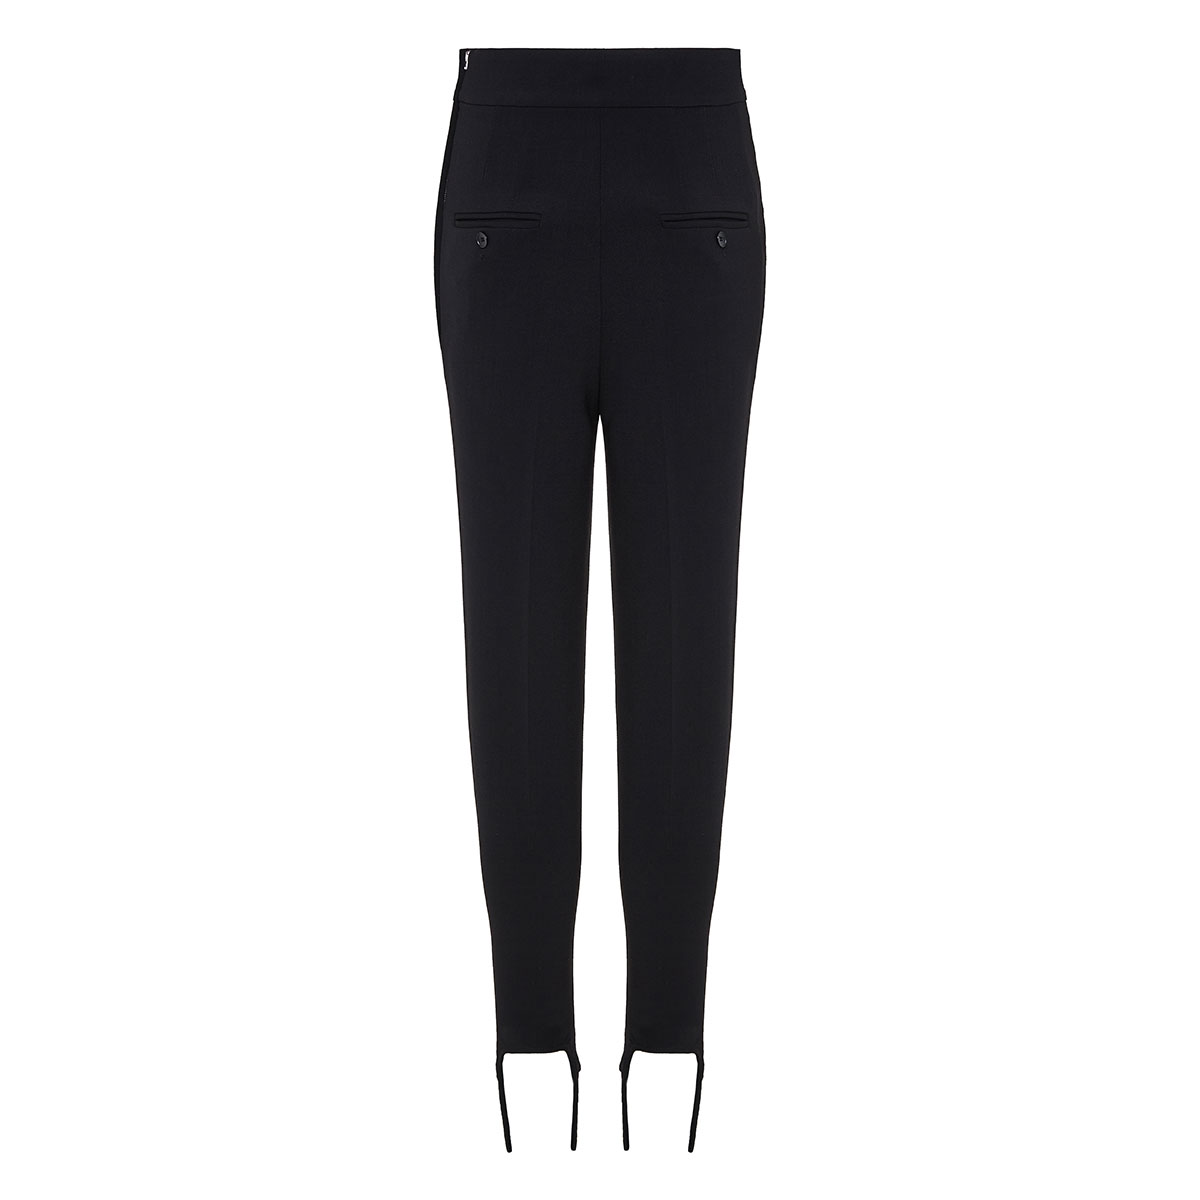 Nanou stirrup leggings